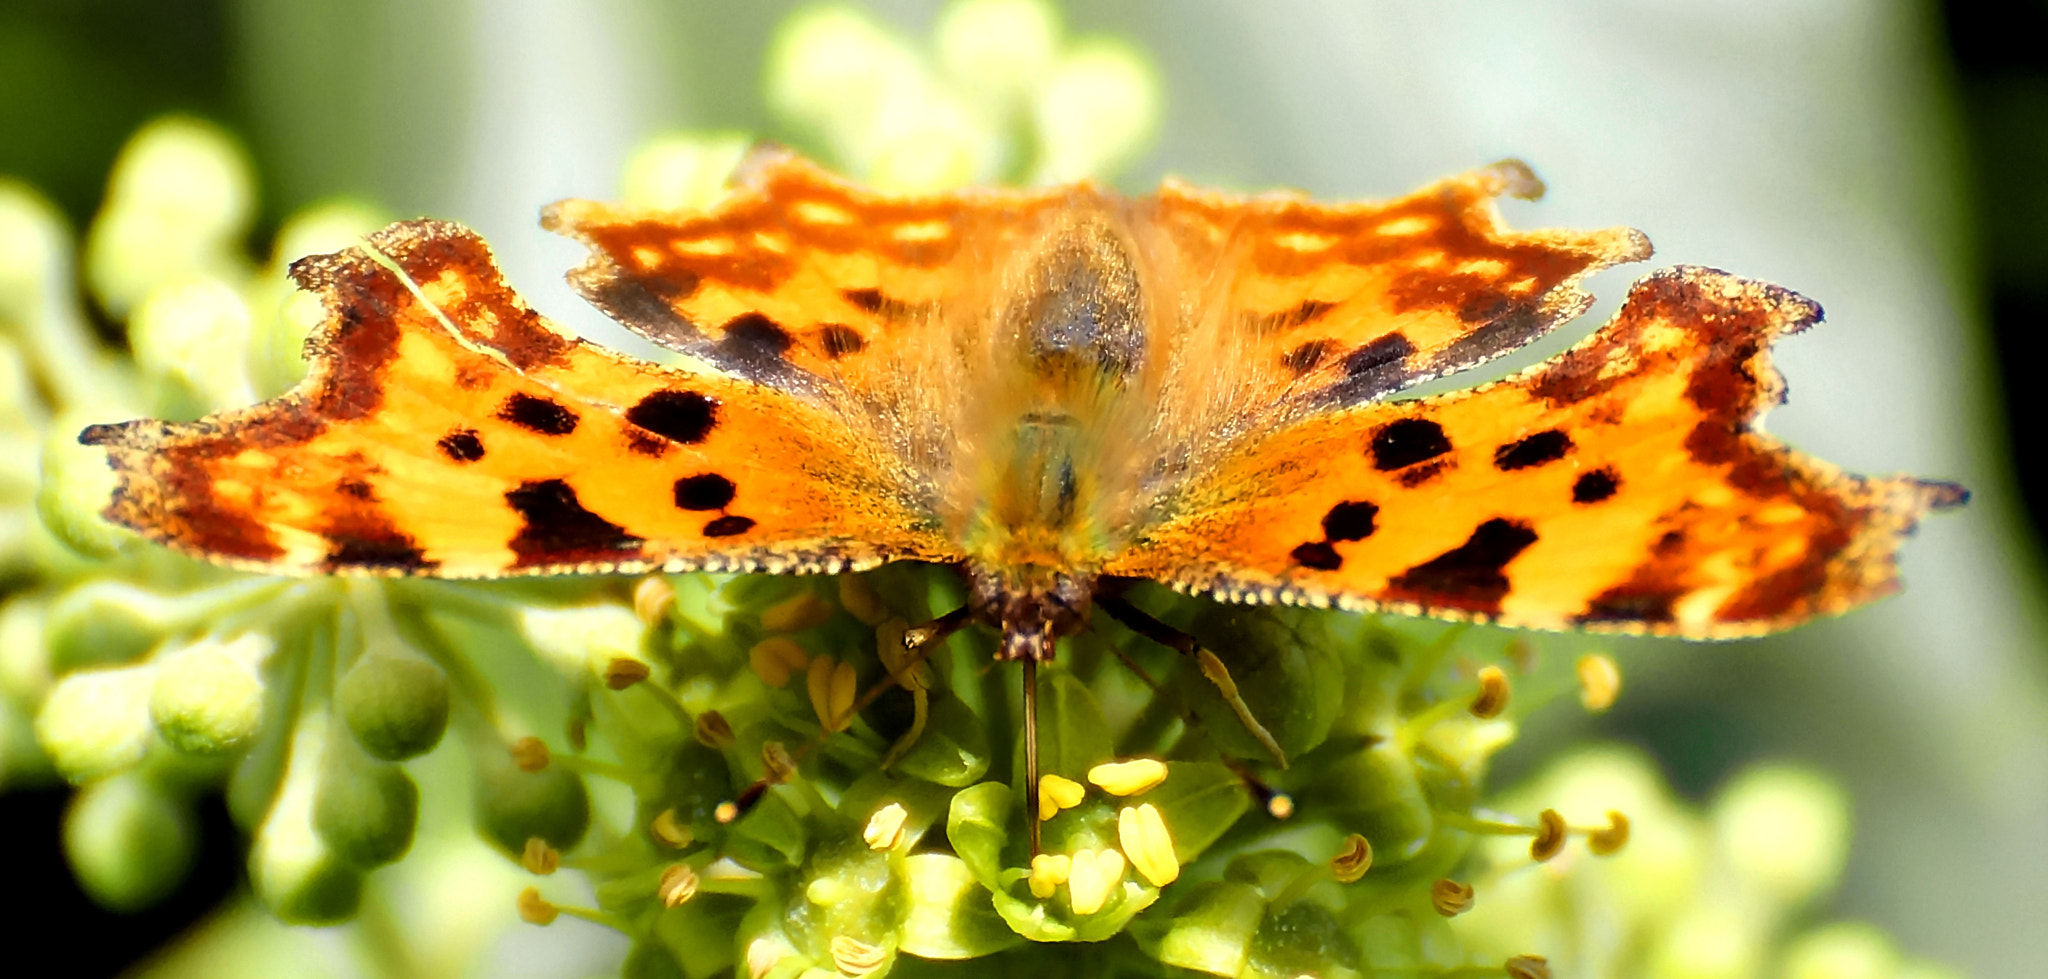 Photograph Comma 2 by DAVID GAHAN on 500px